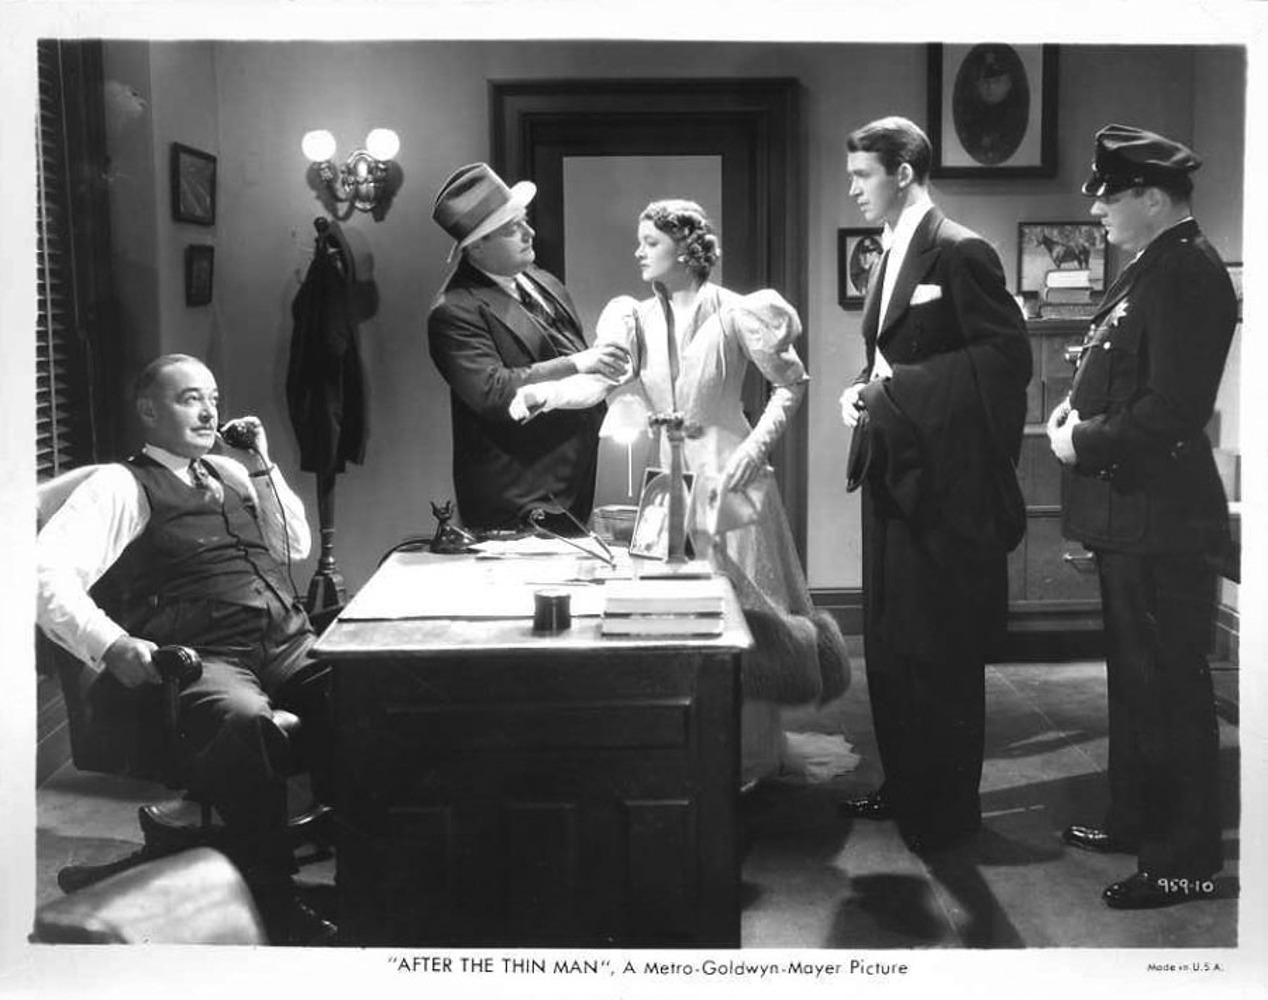 after the thin man 1936 scene still photo 959-10